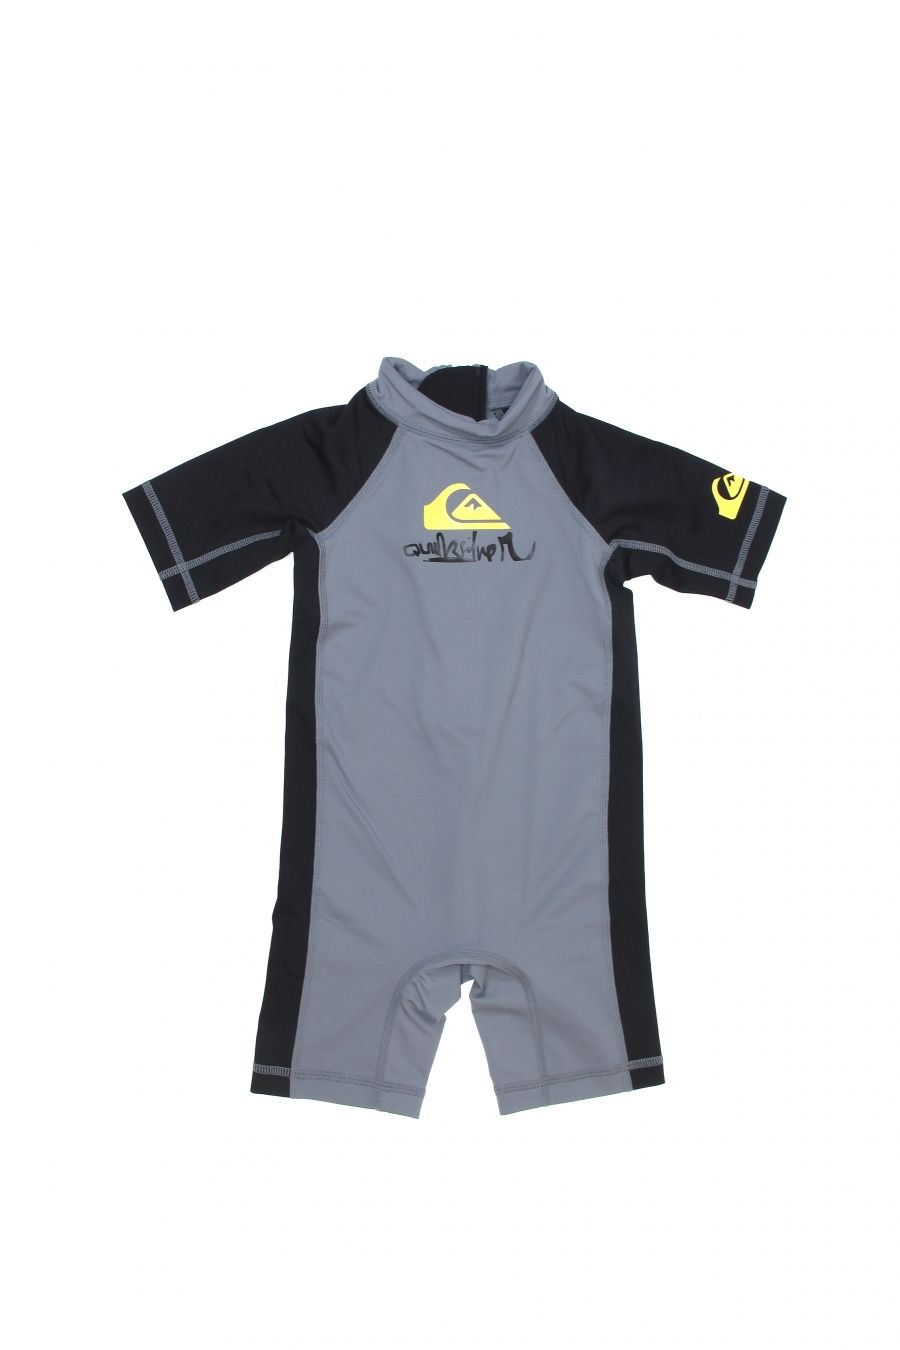 Quiksilver Swimsuit Size 2t Kids Outfits Swimsuits Clothes